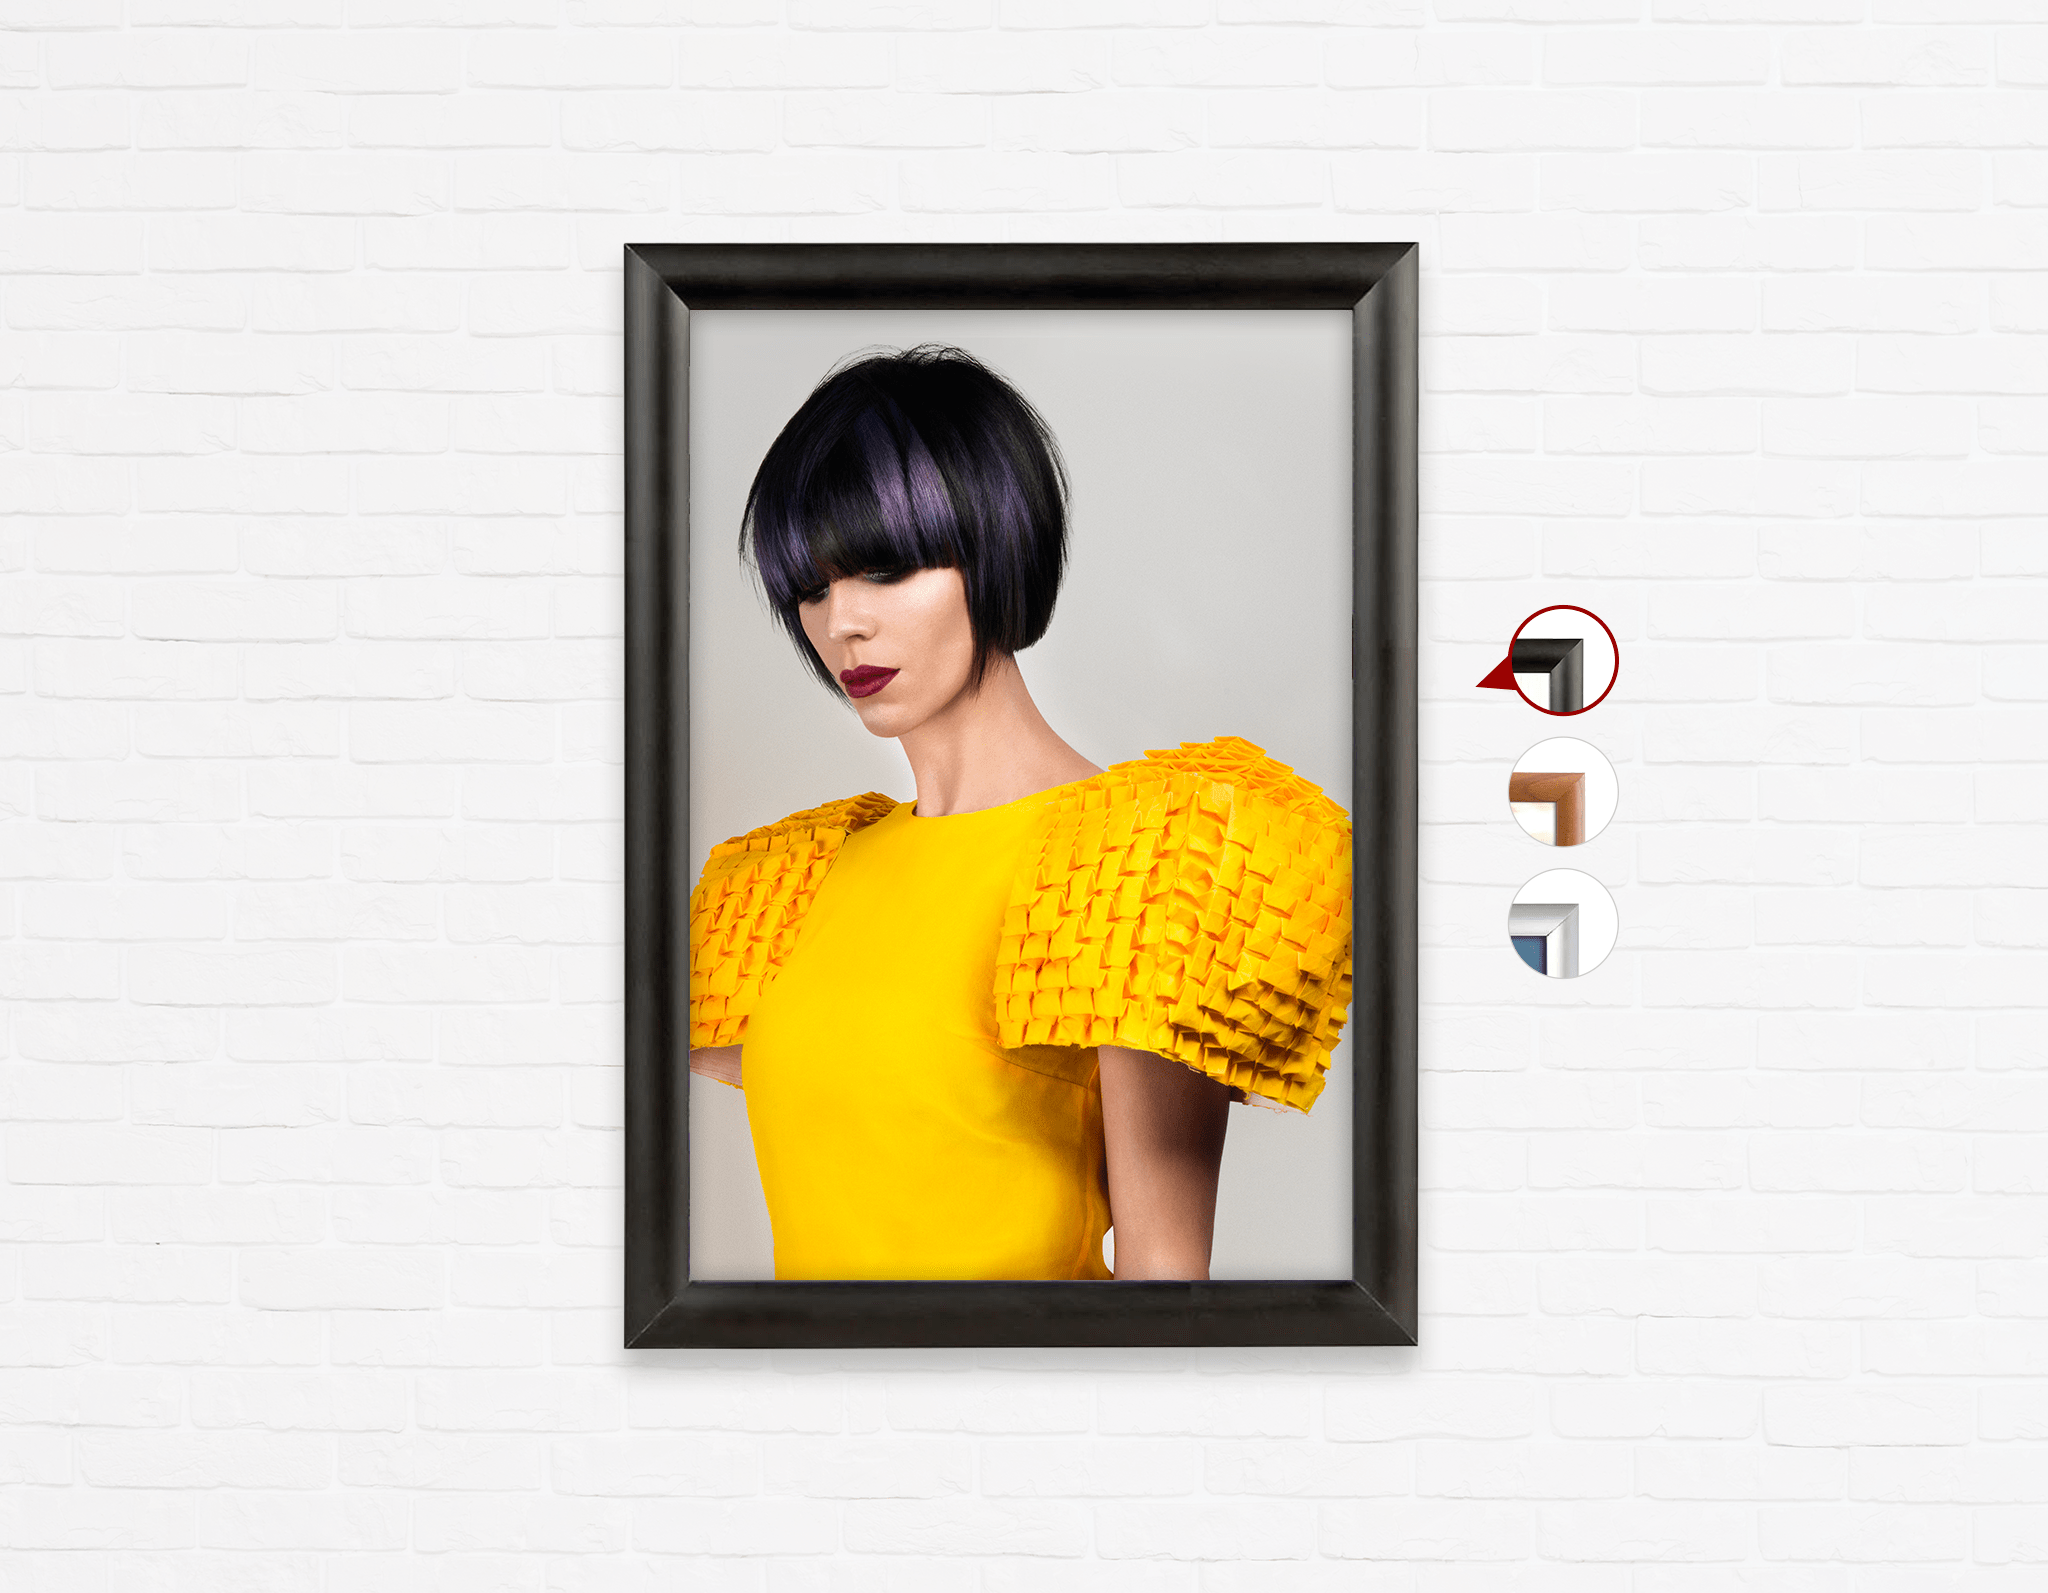 Salon Click Click Frames, One-Sided: Woman with Bob Hairstyle with Purple Highlights